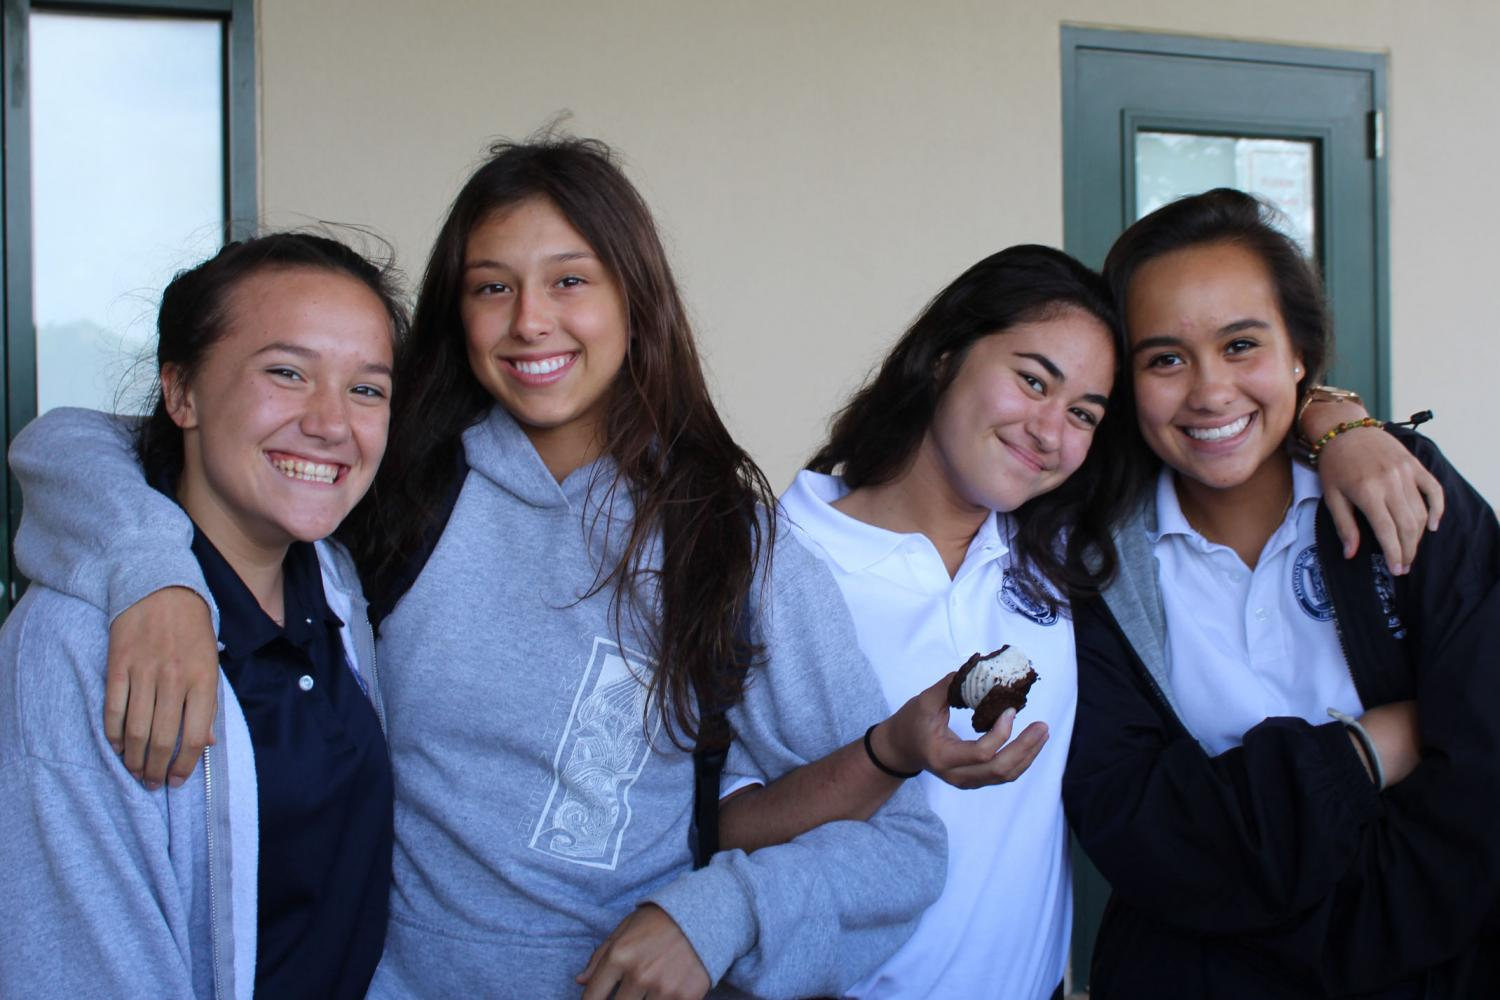 Seniors Chloe Lawrence and Nāpua Gushiken hang with their freshman siblings Kalia Franco and Laʻakea Awai. Cruisin' in the Quad gave freshmen the chance to meet their senior sibling while bonding over ice cream.